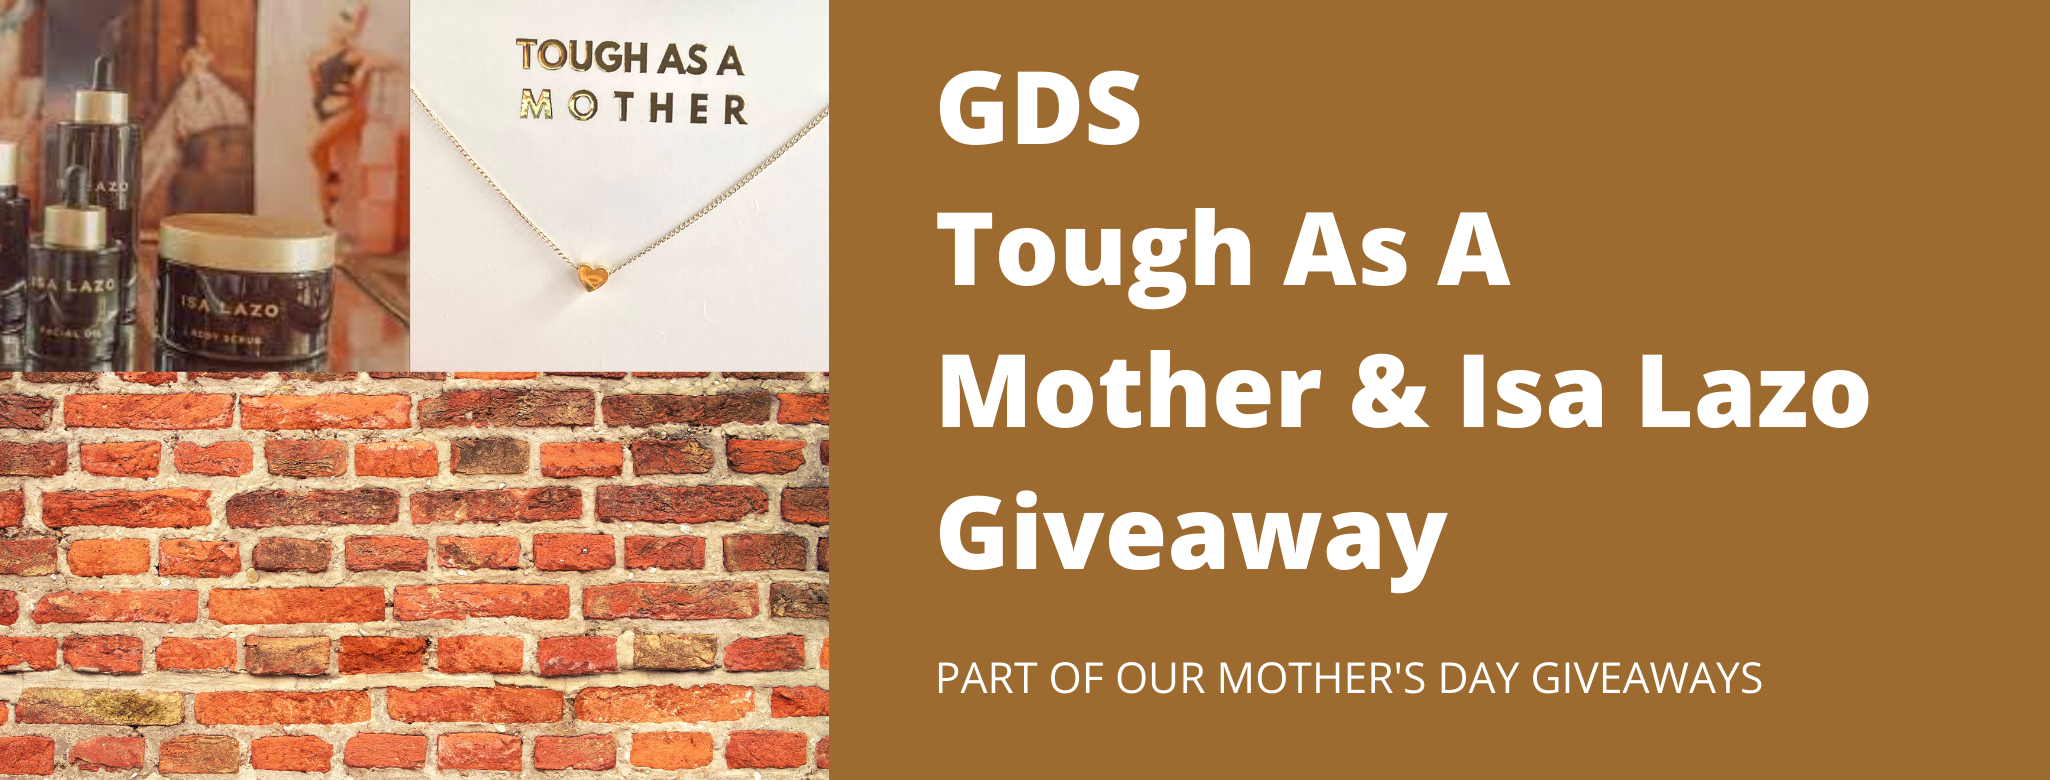 GDS Tough As A Mother & Isa Lazo Giveaway